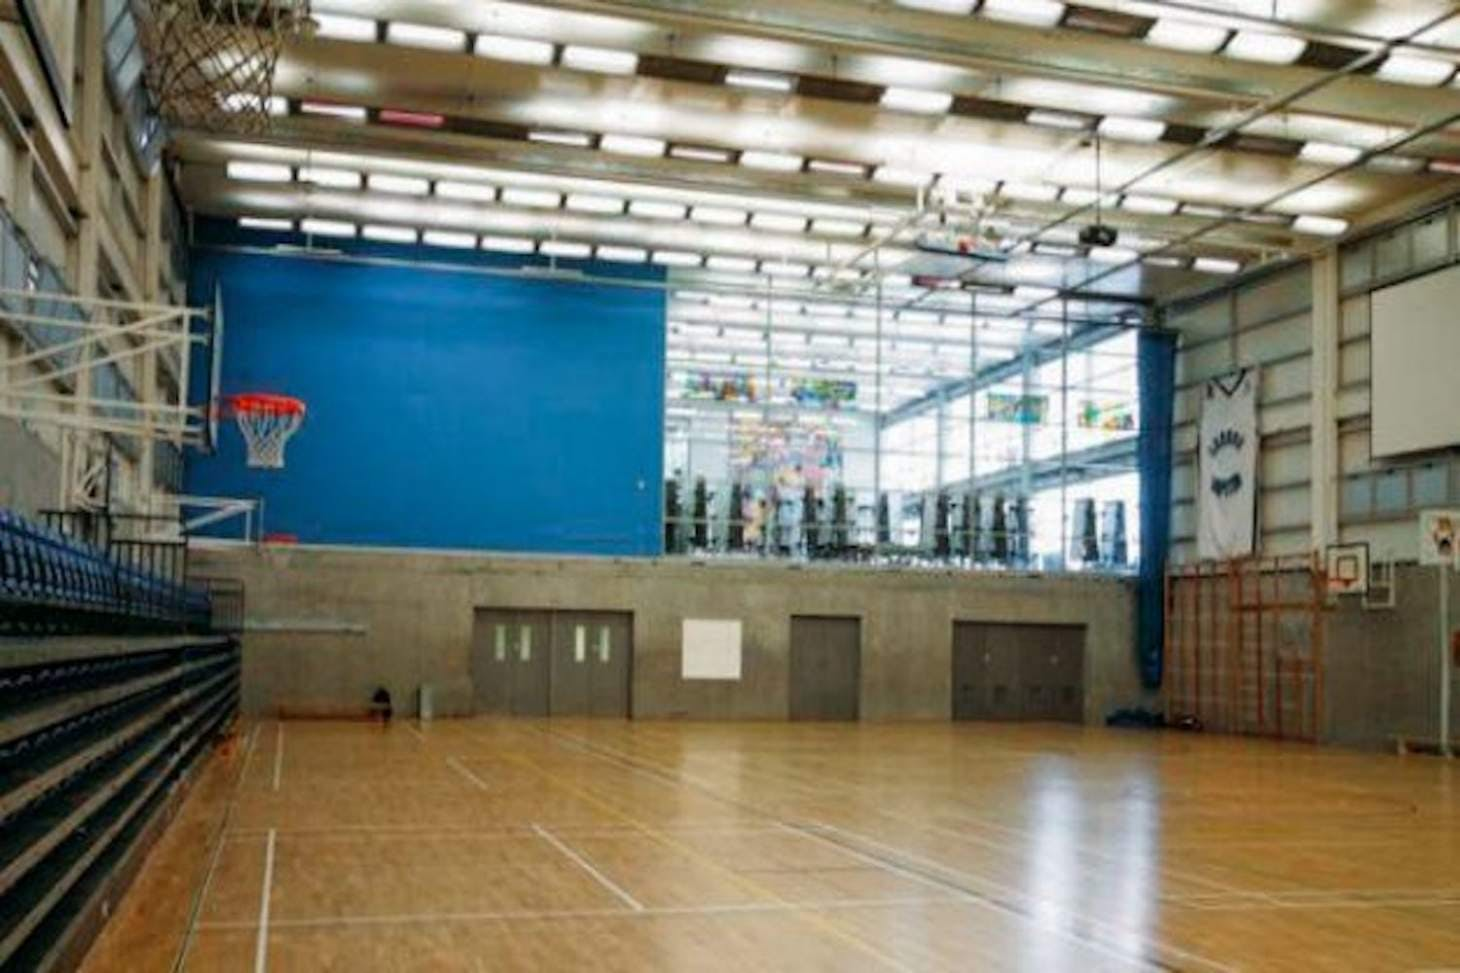 Capital City Academy Court   Sports hall volleyball court